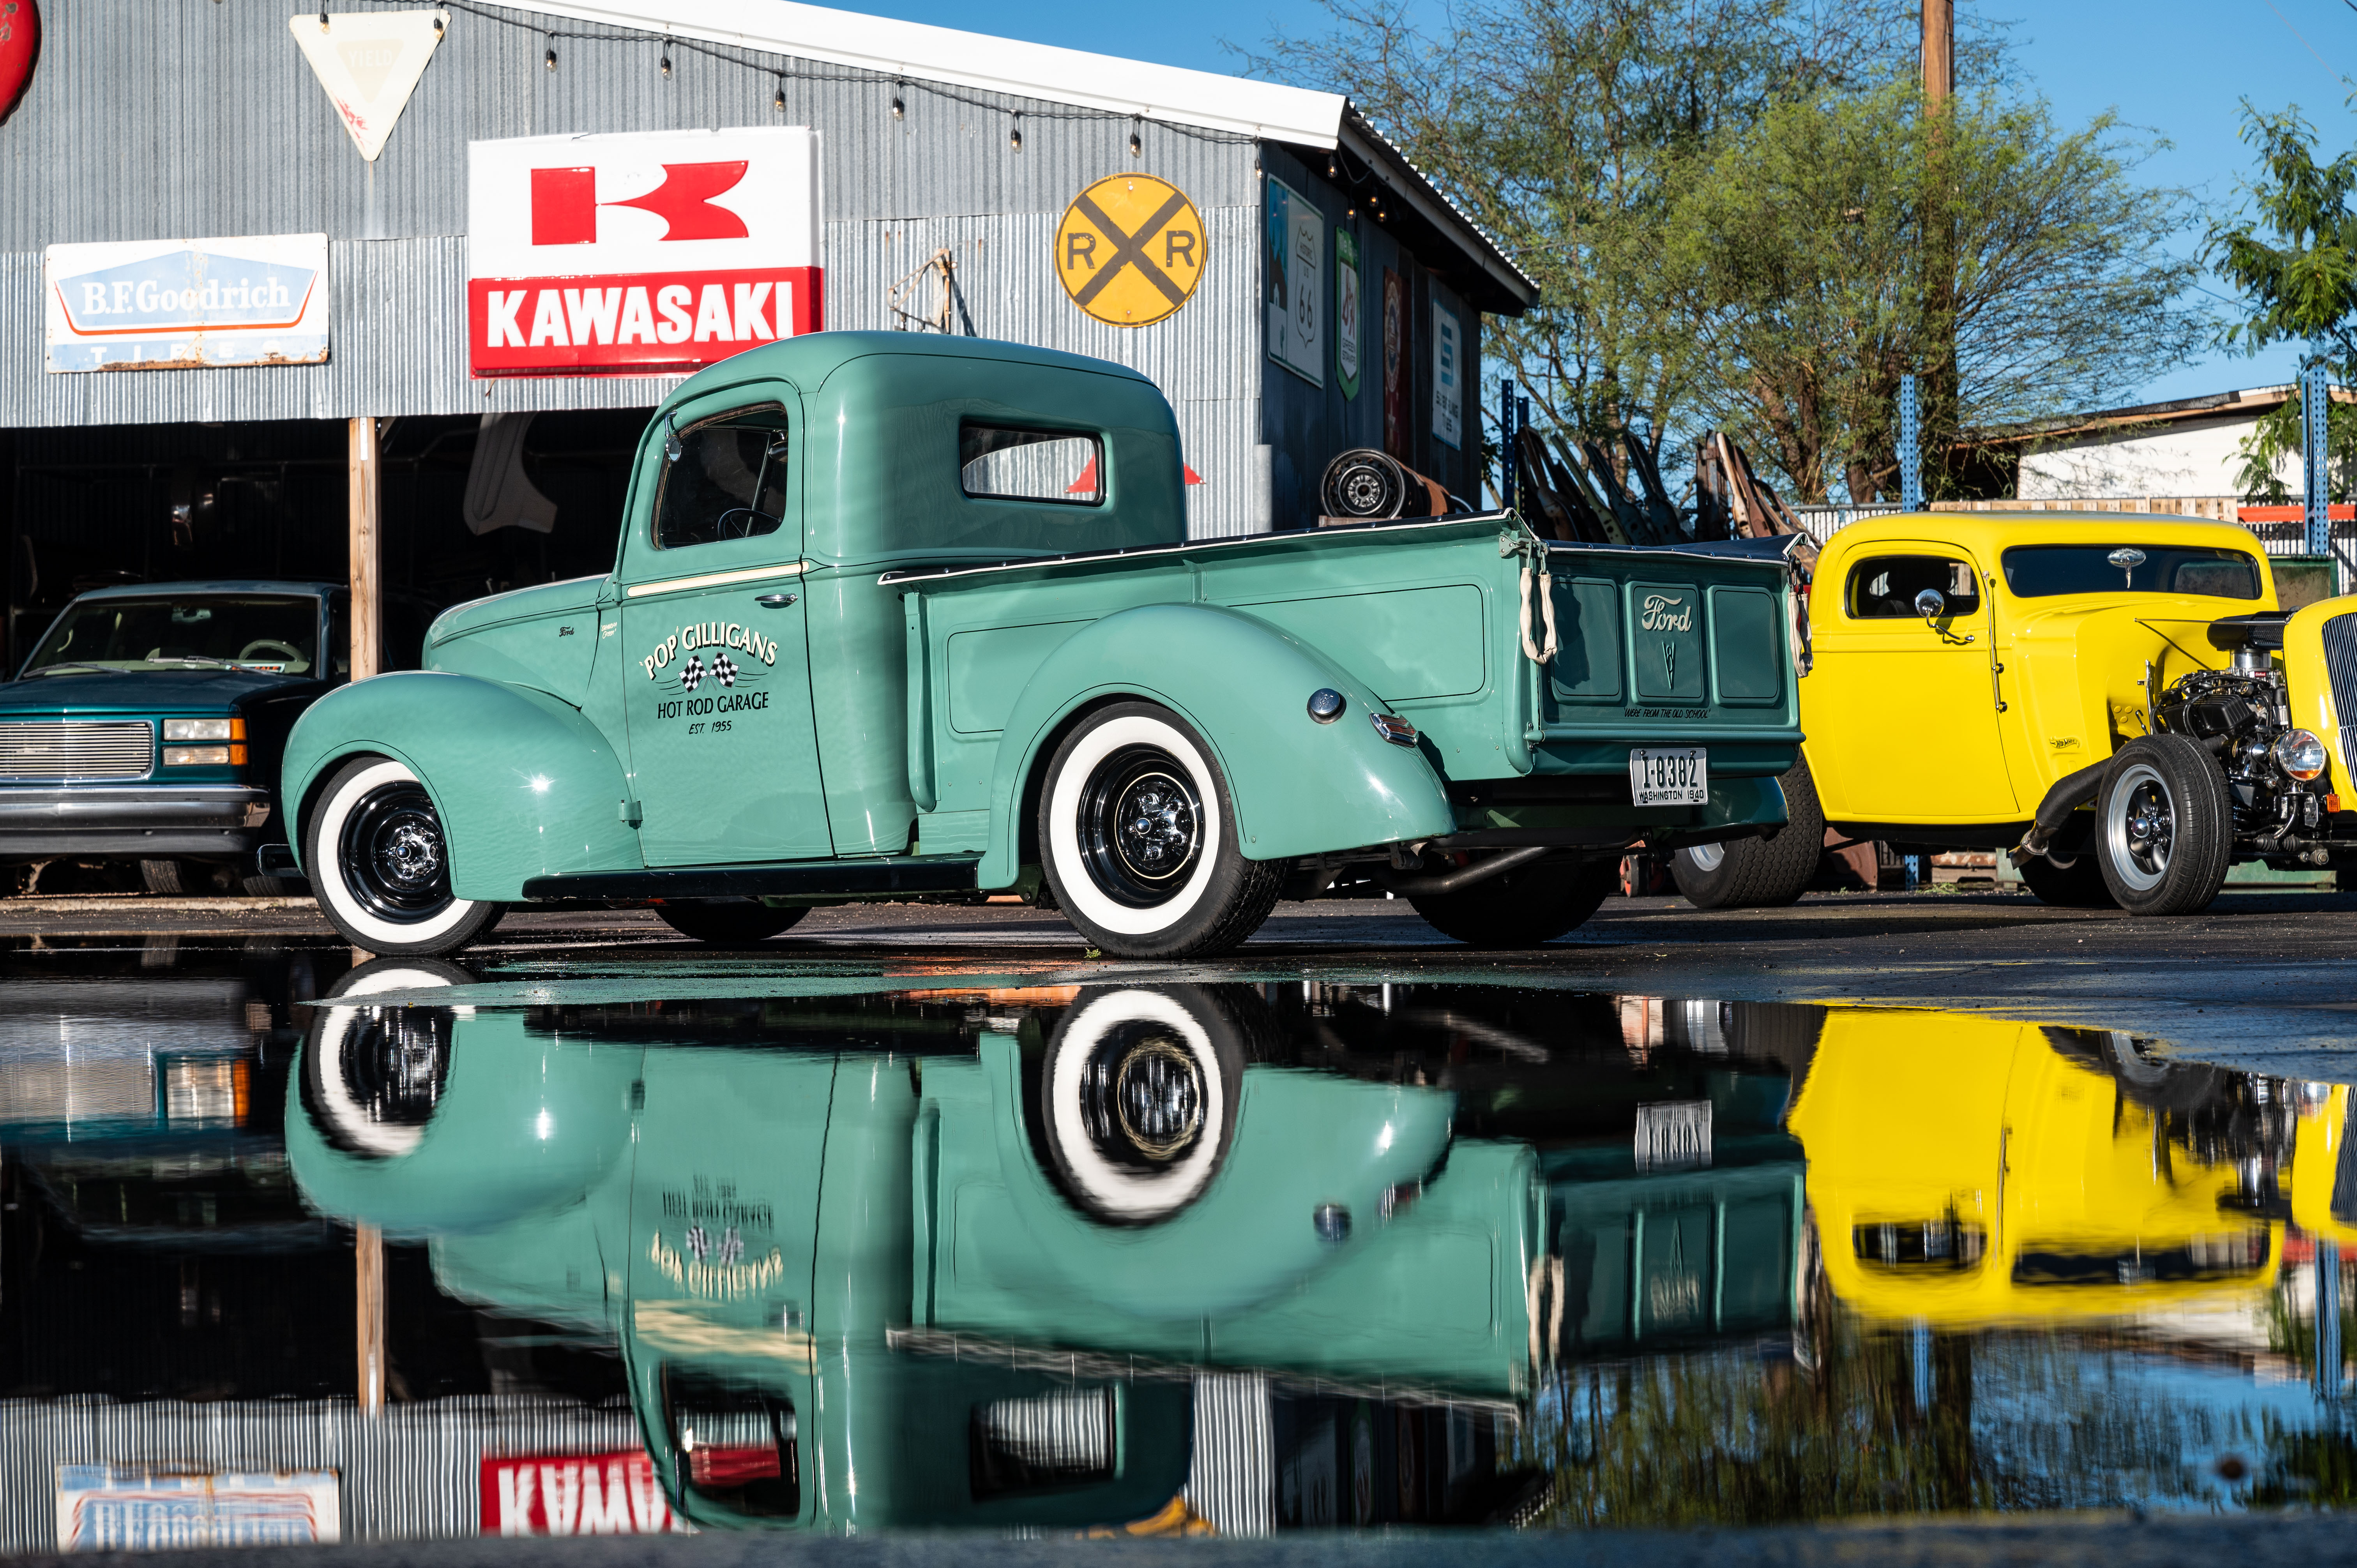 Paul 'Pop' Gilligan built this 1940 Ford pickup with a vintage shop truck vibe.